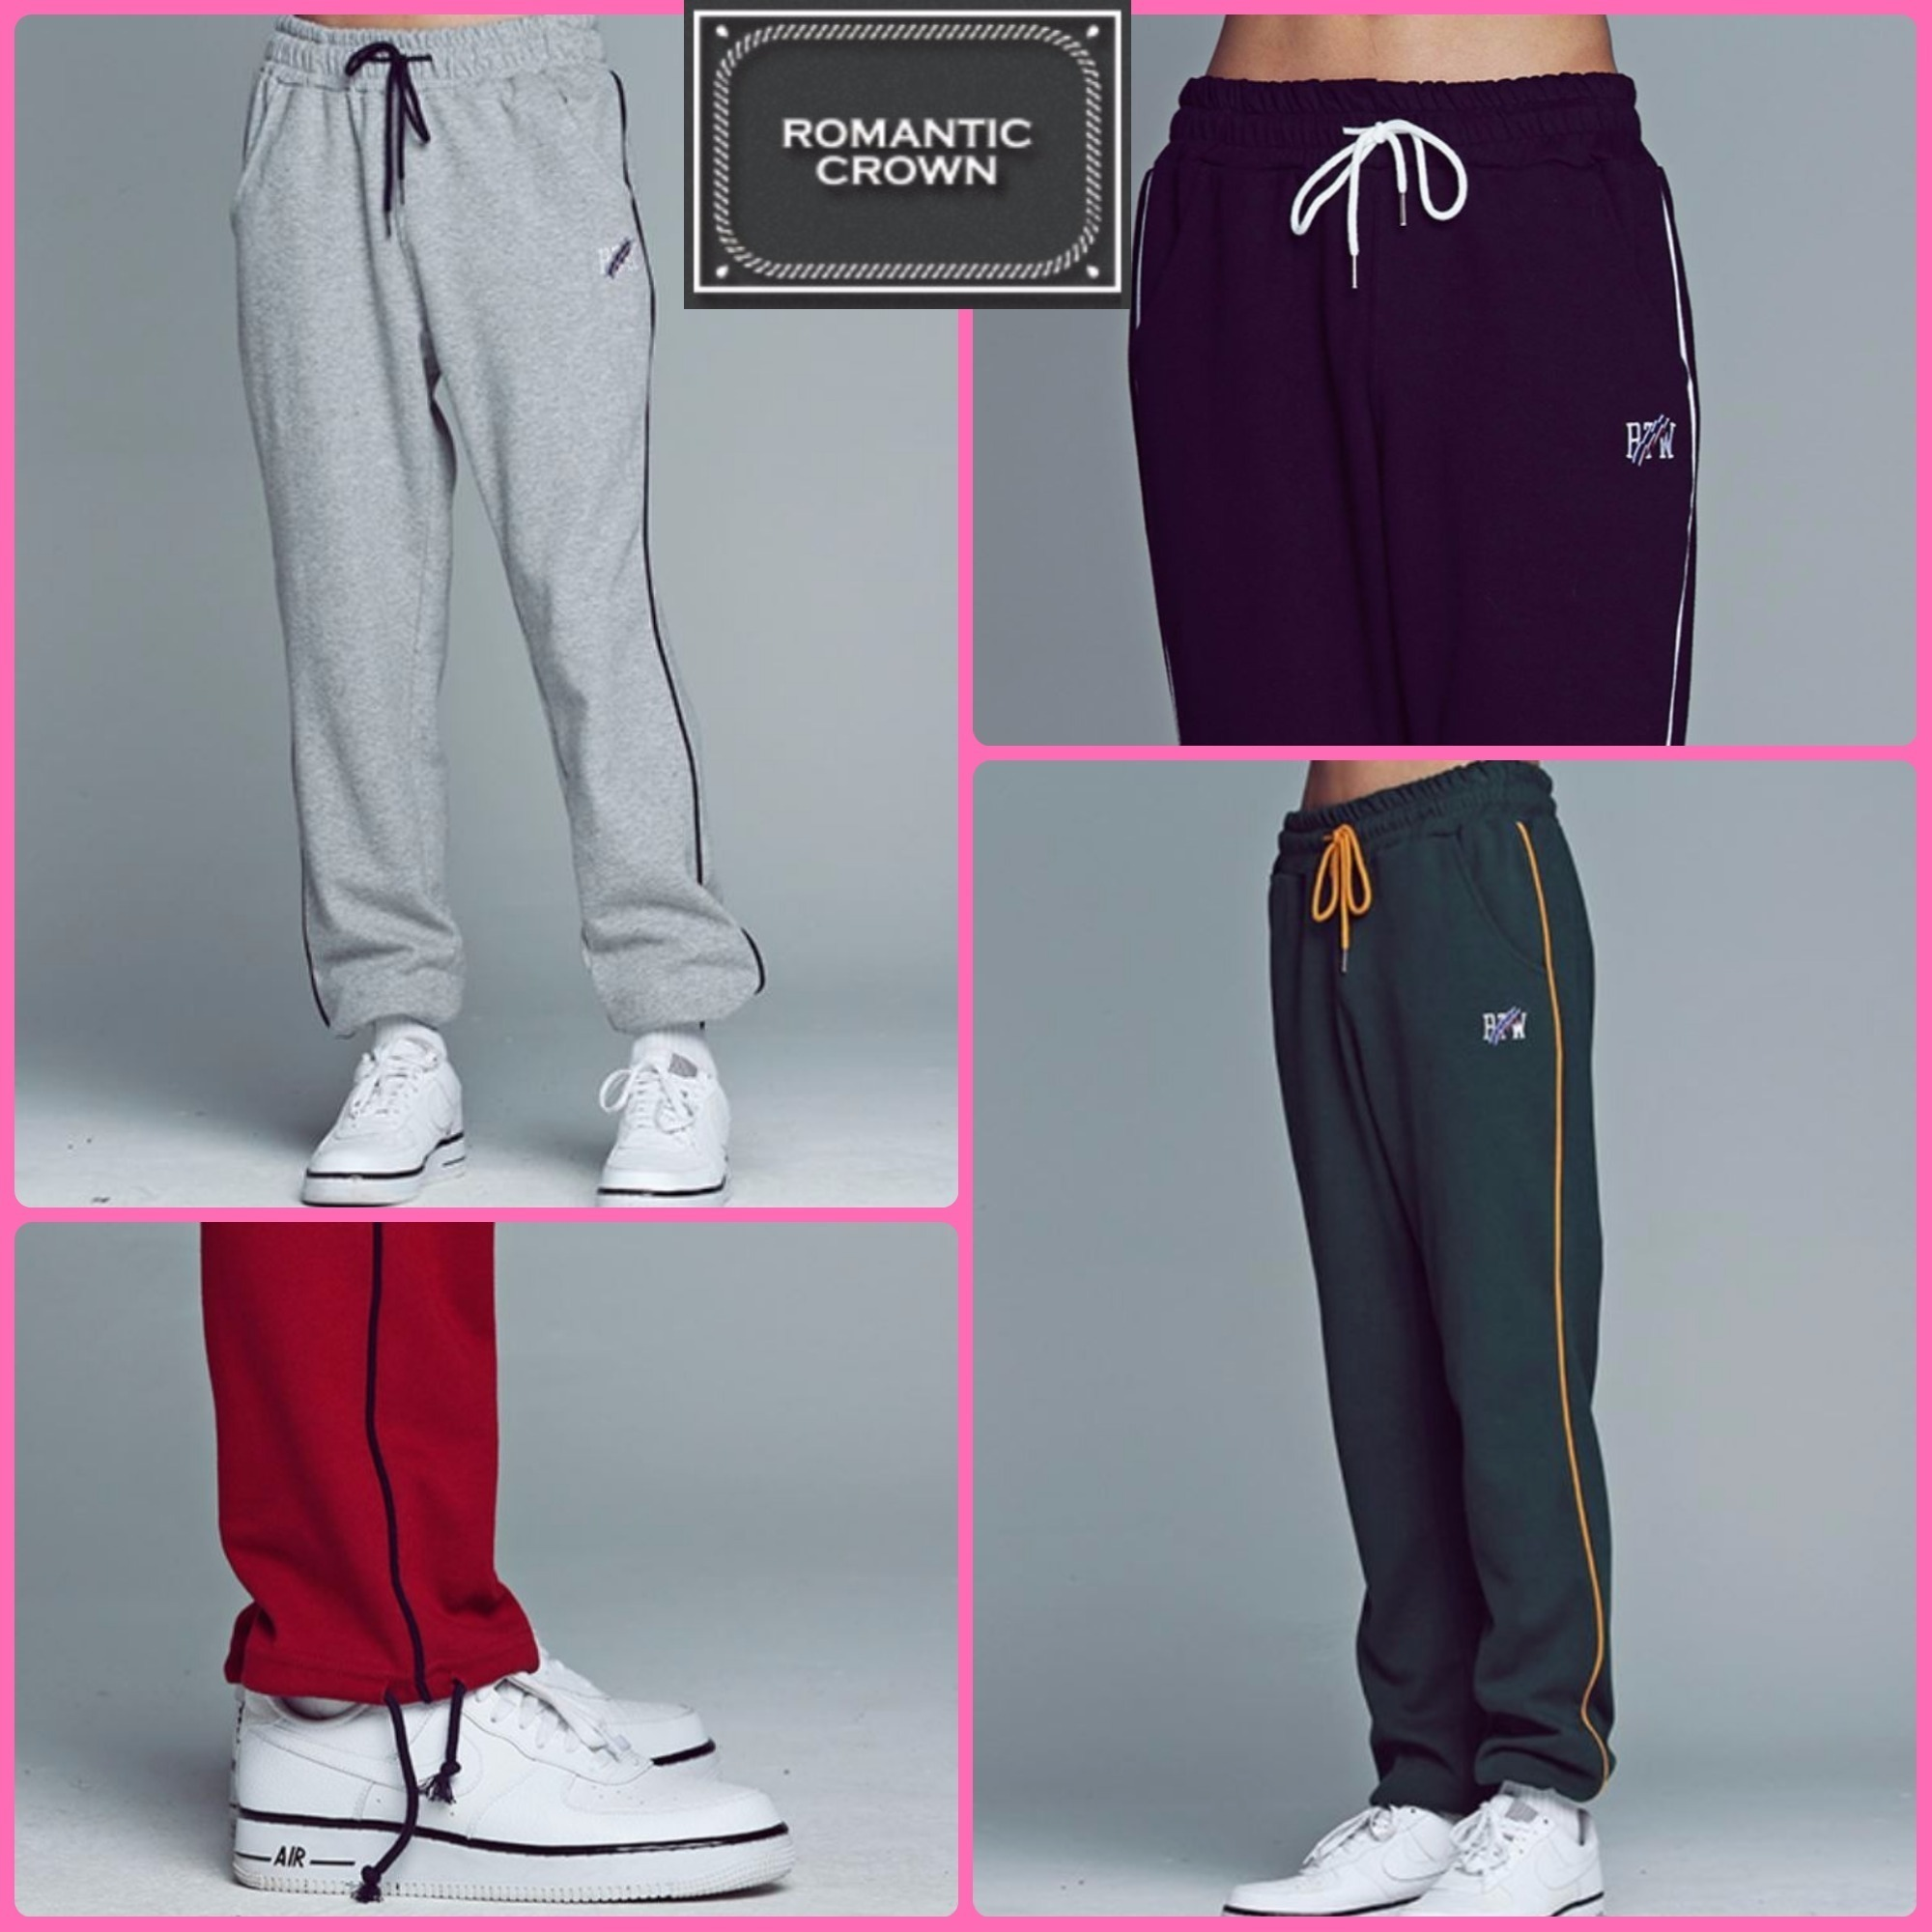 【ROMANTIC CROWN】正規品★Piping Sweat パンツ 4色/追跡送料込